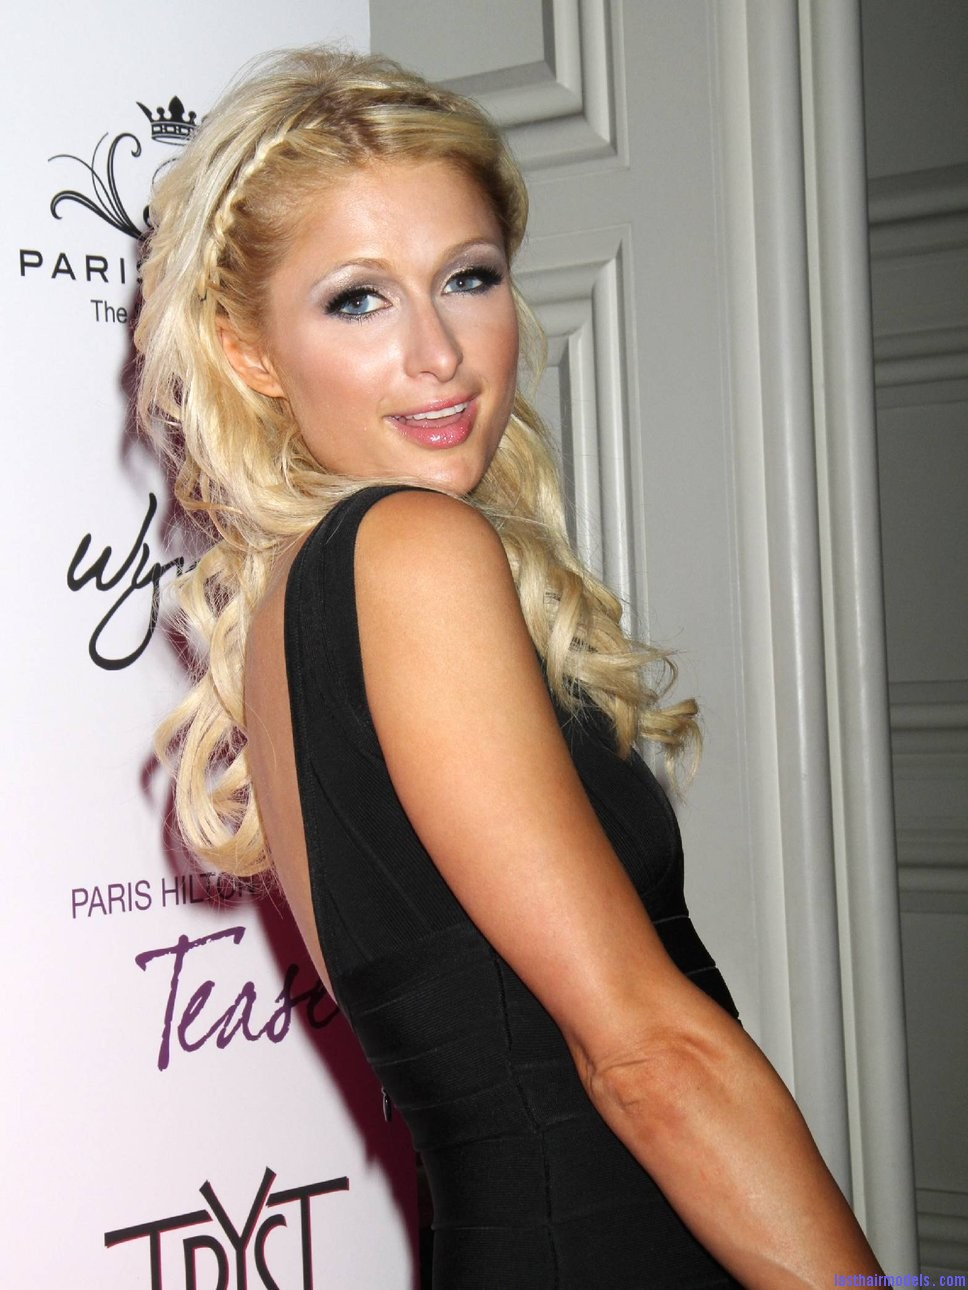 paris hilton las vegas party h Paris Hiltons side braid: look cute and chic together!